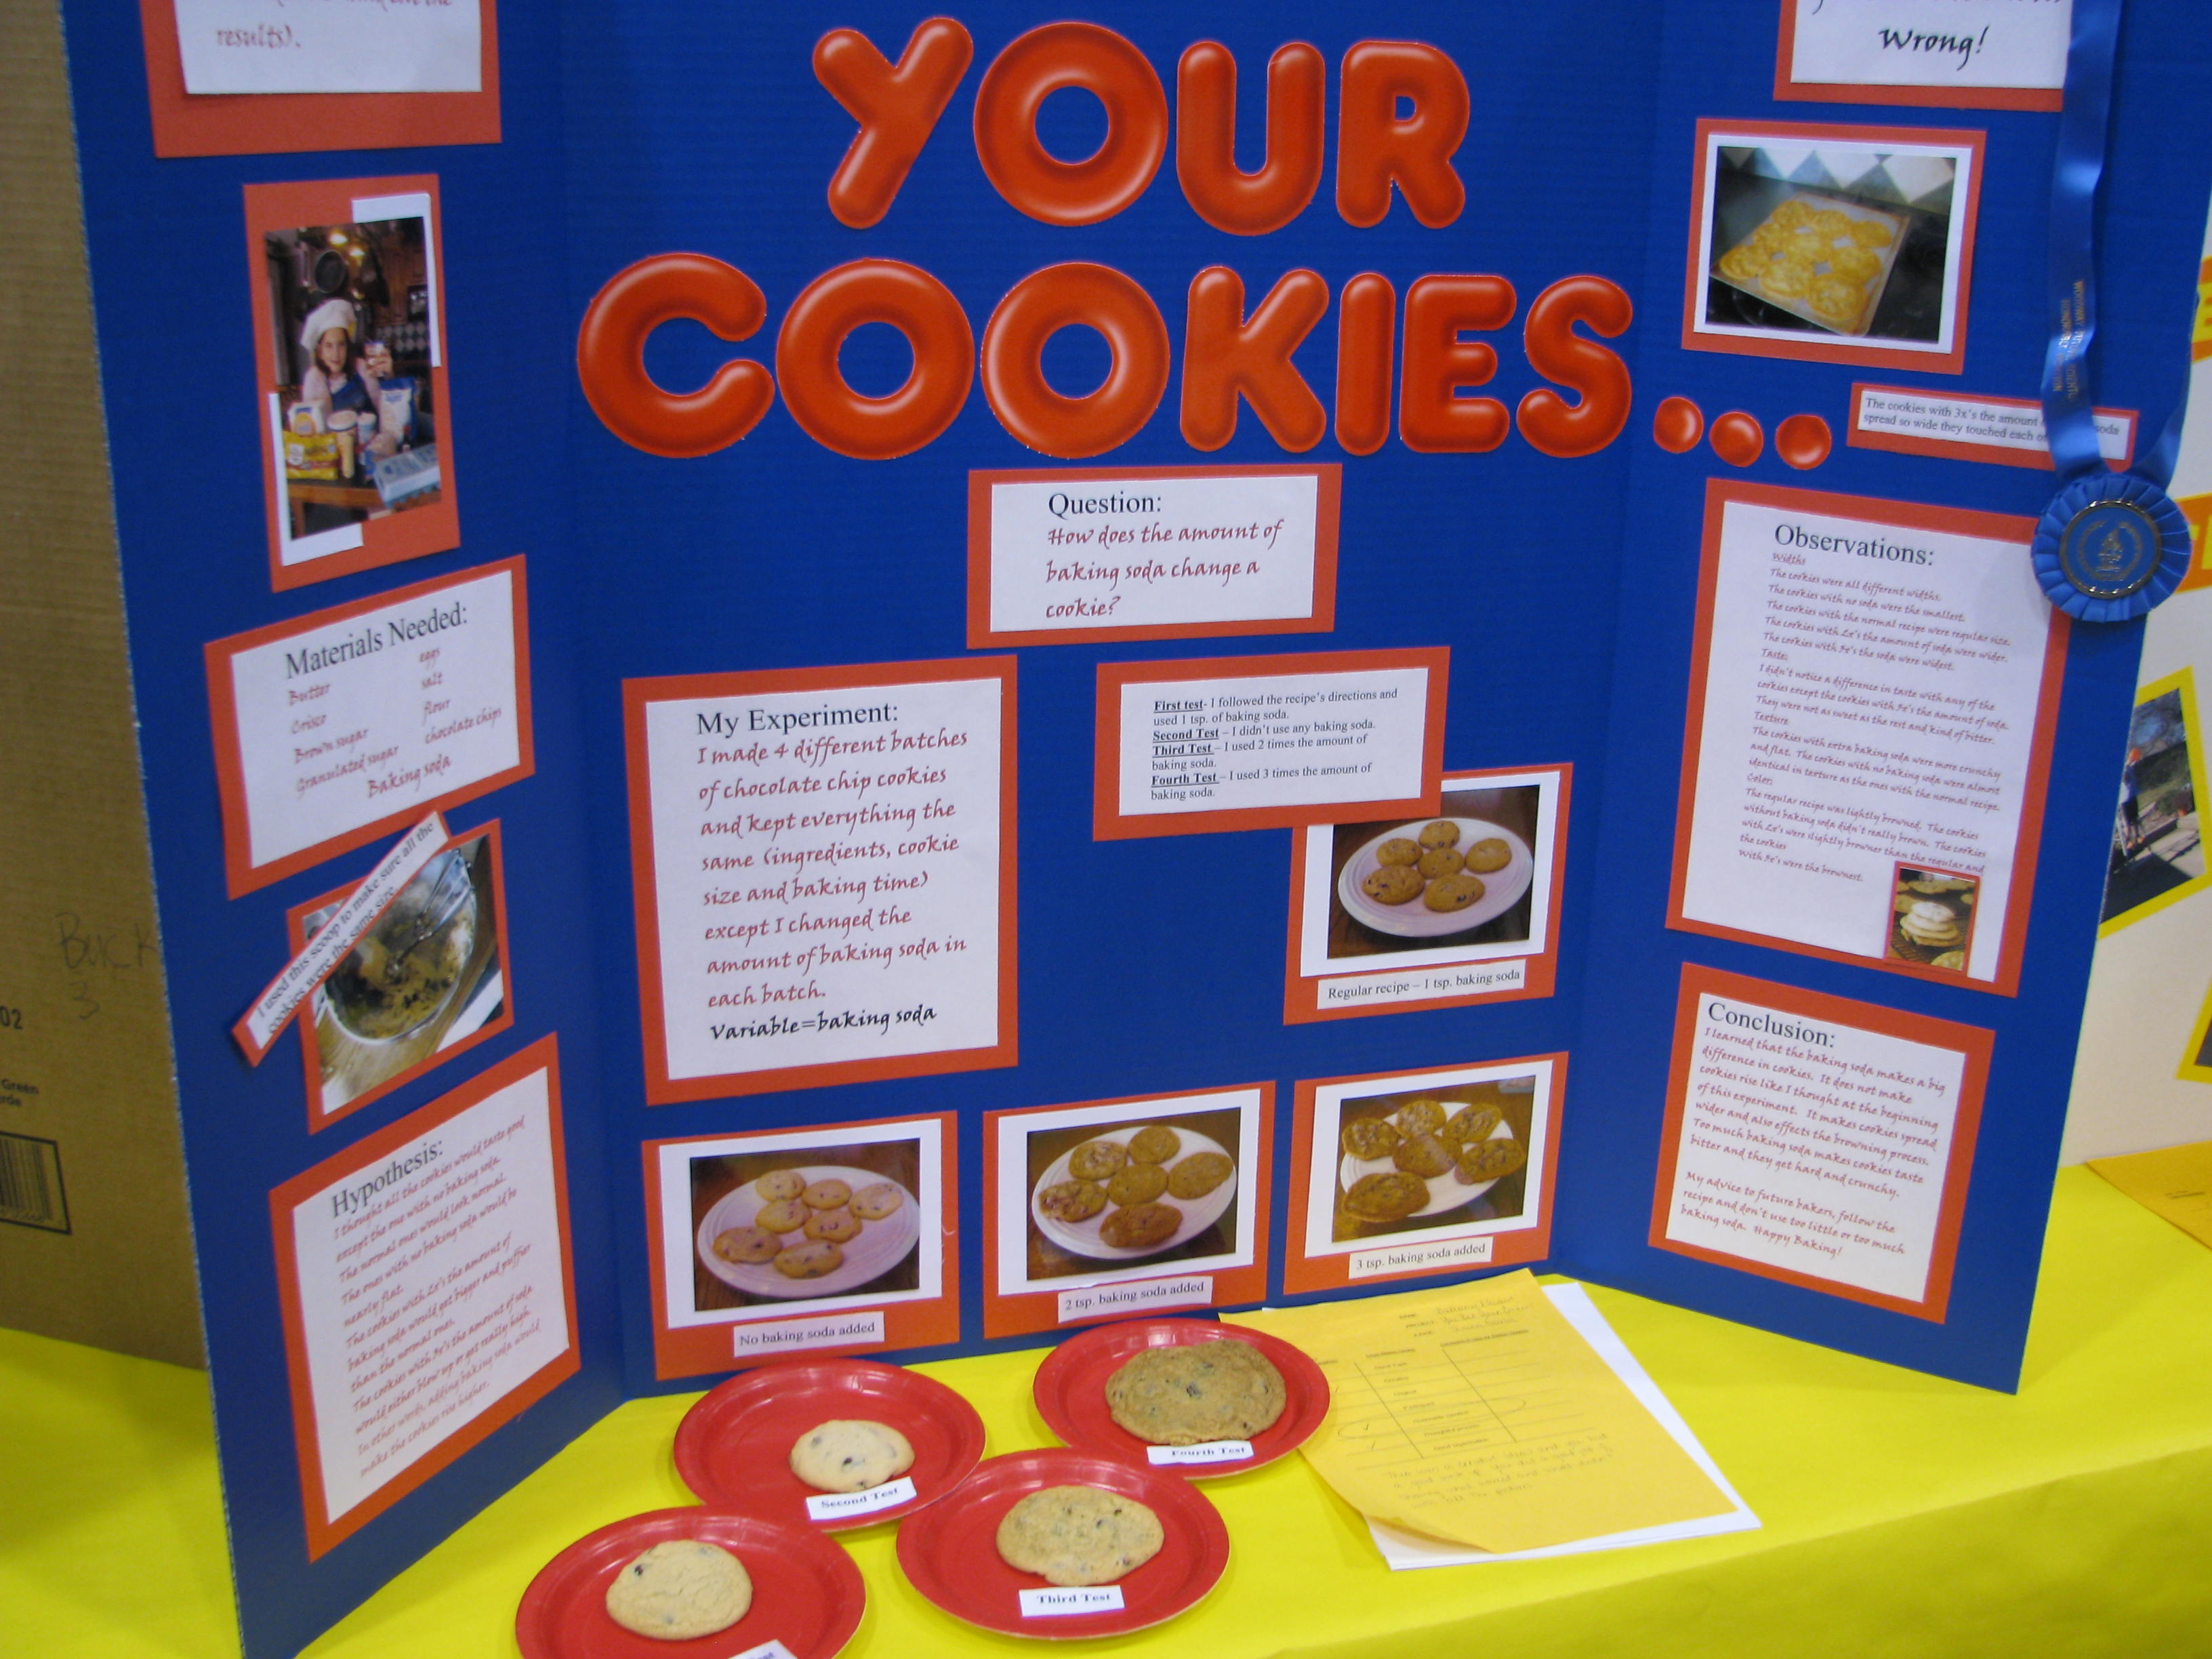 Cool science fair projects for 8th graders